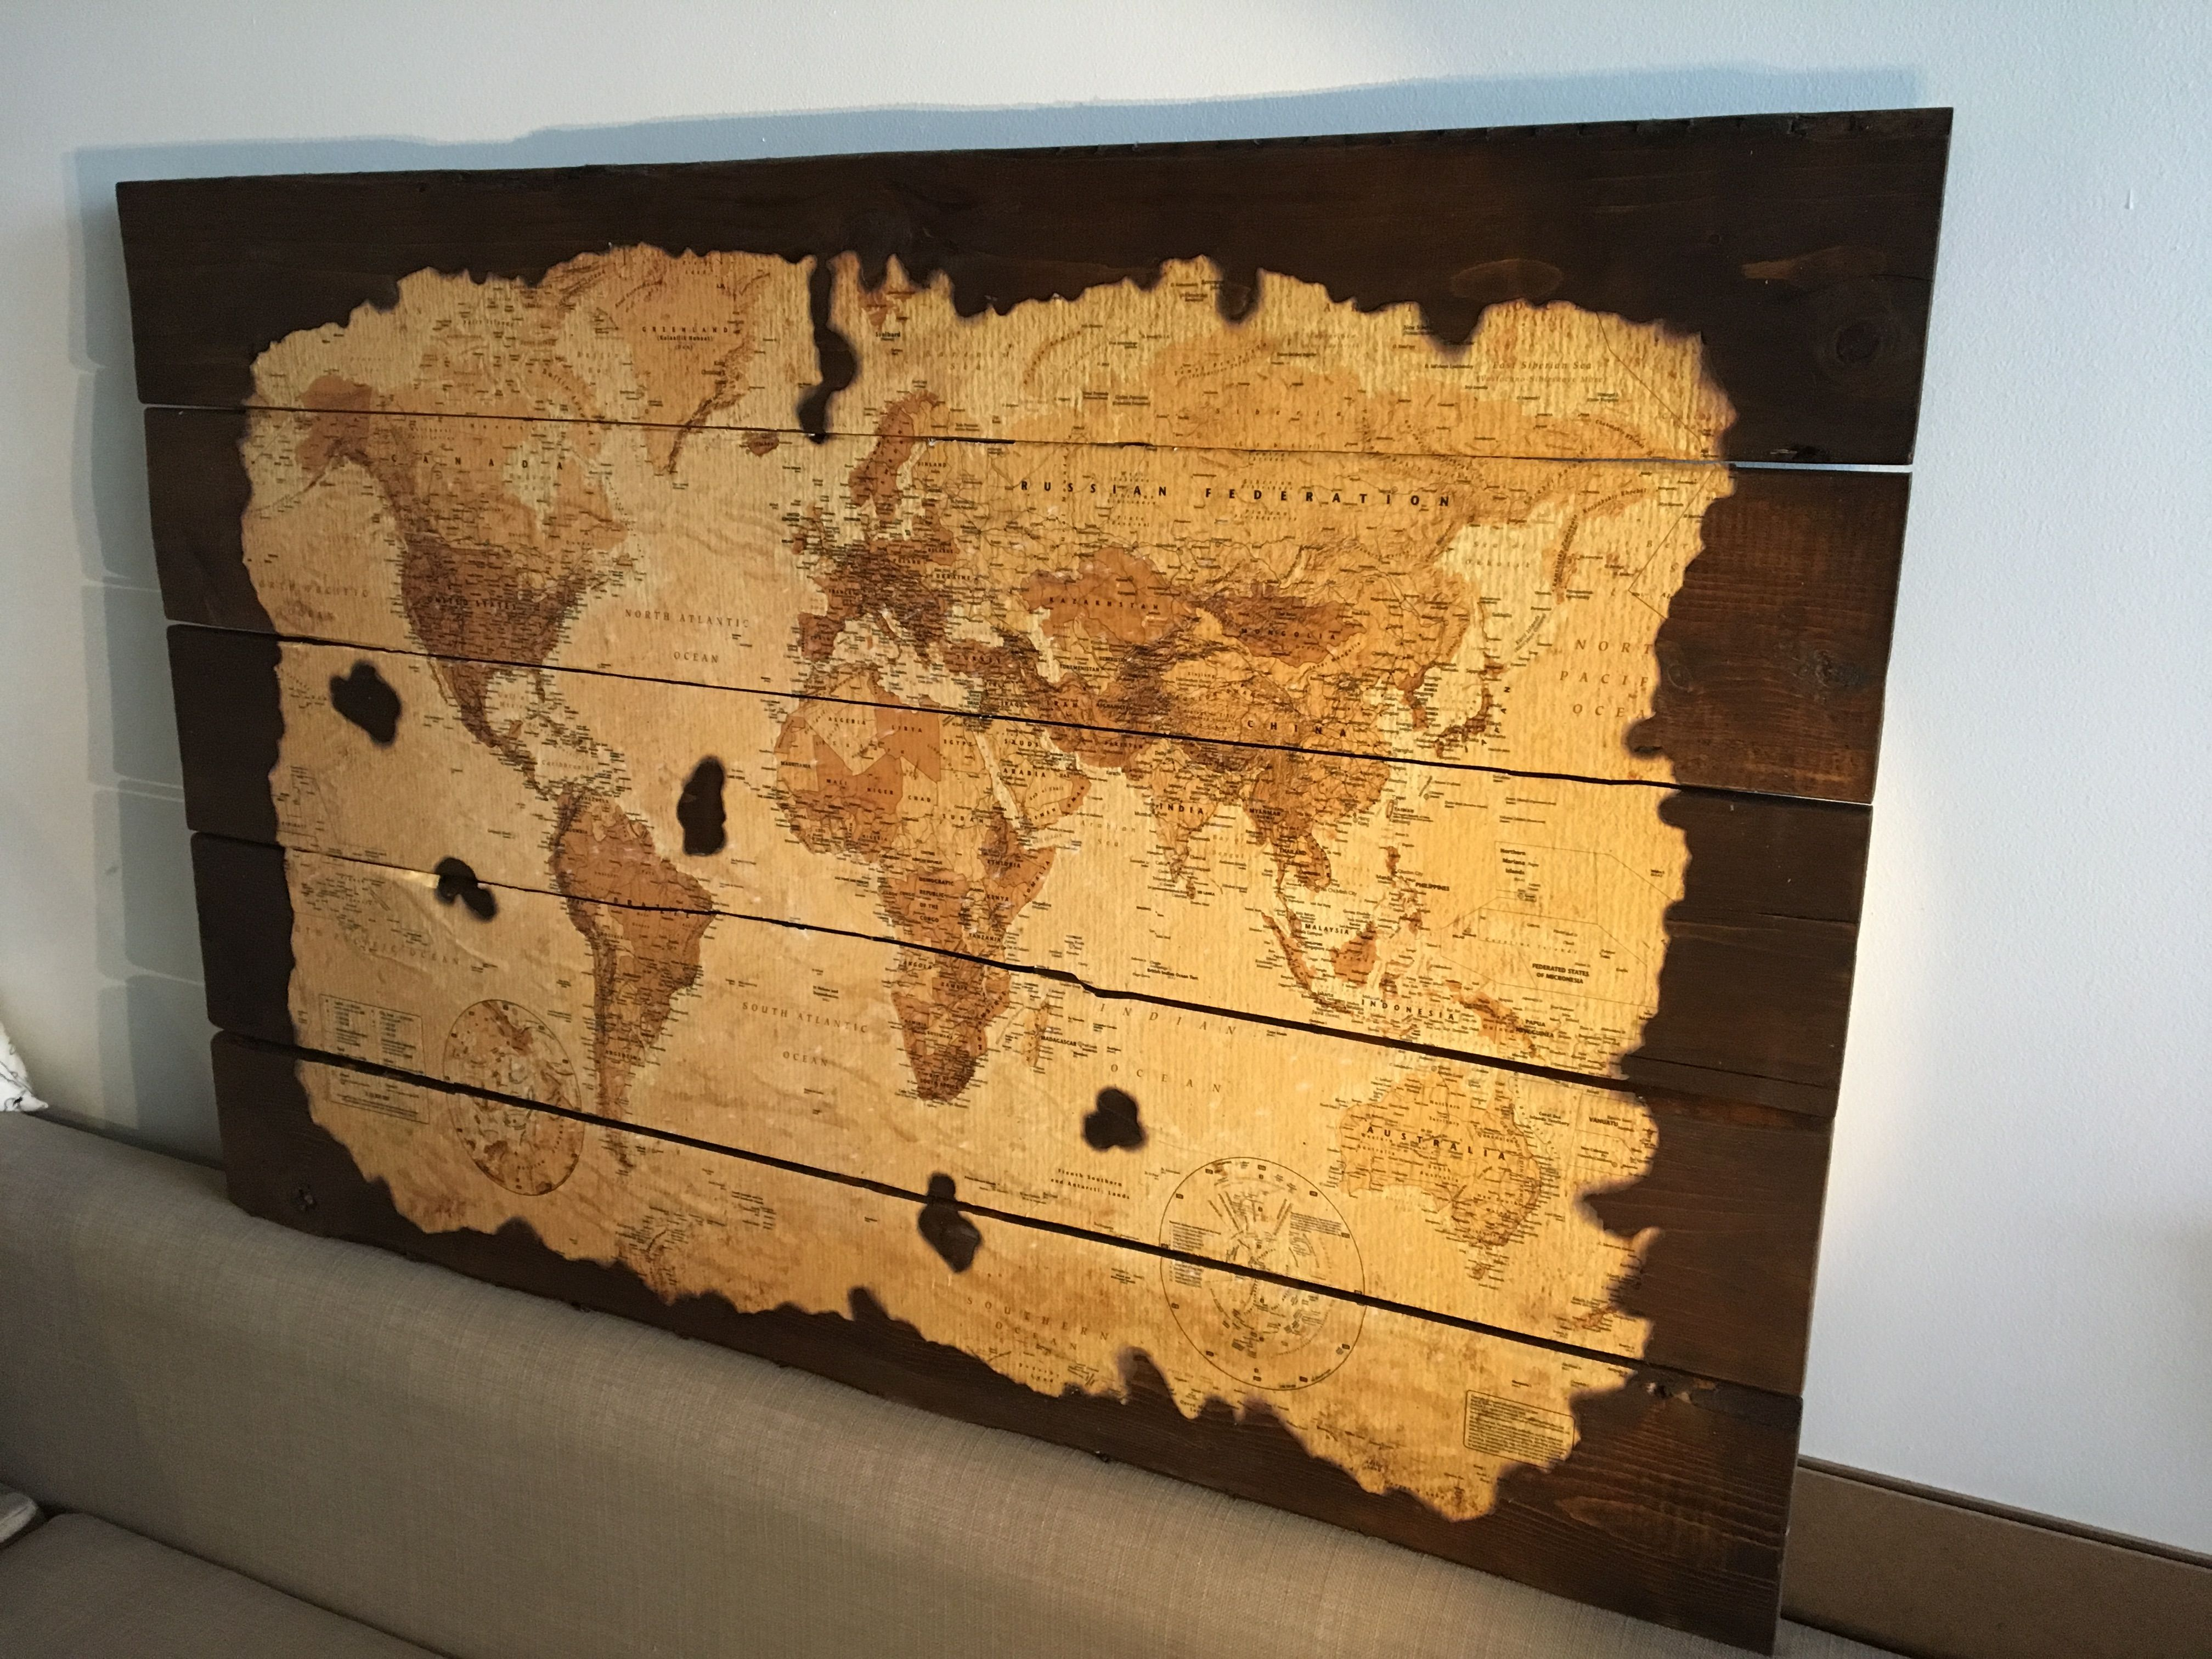 Antique World Map on Wood Planks | Wood world map, World map ...